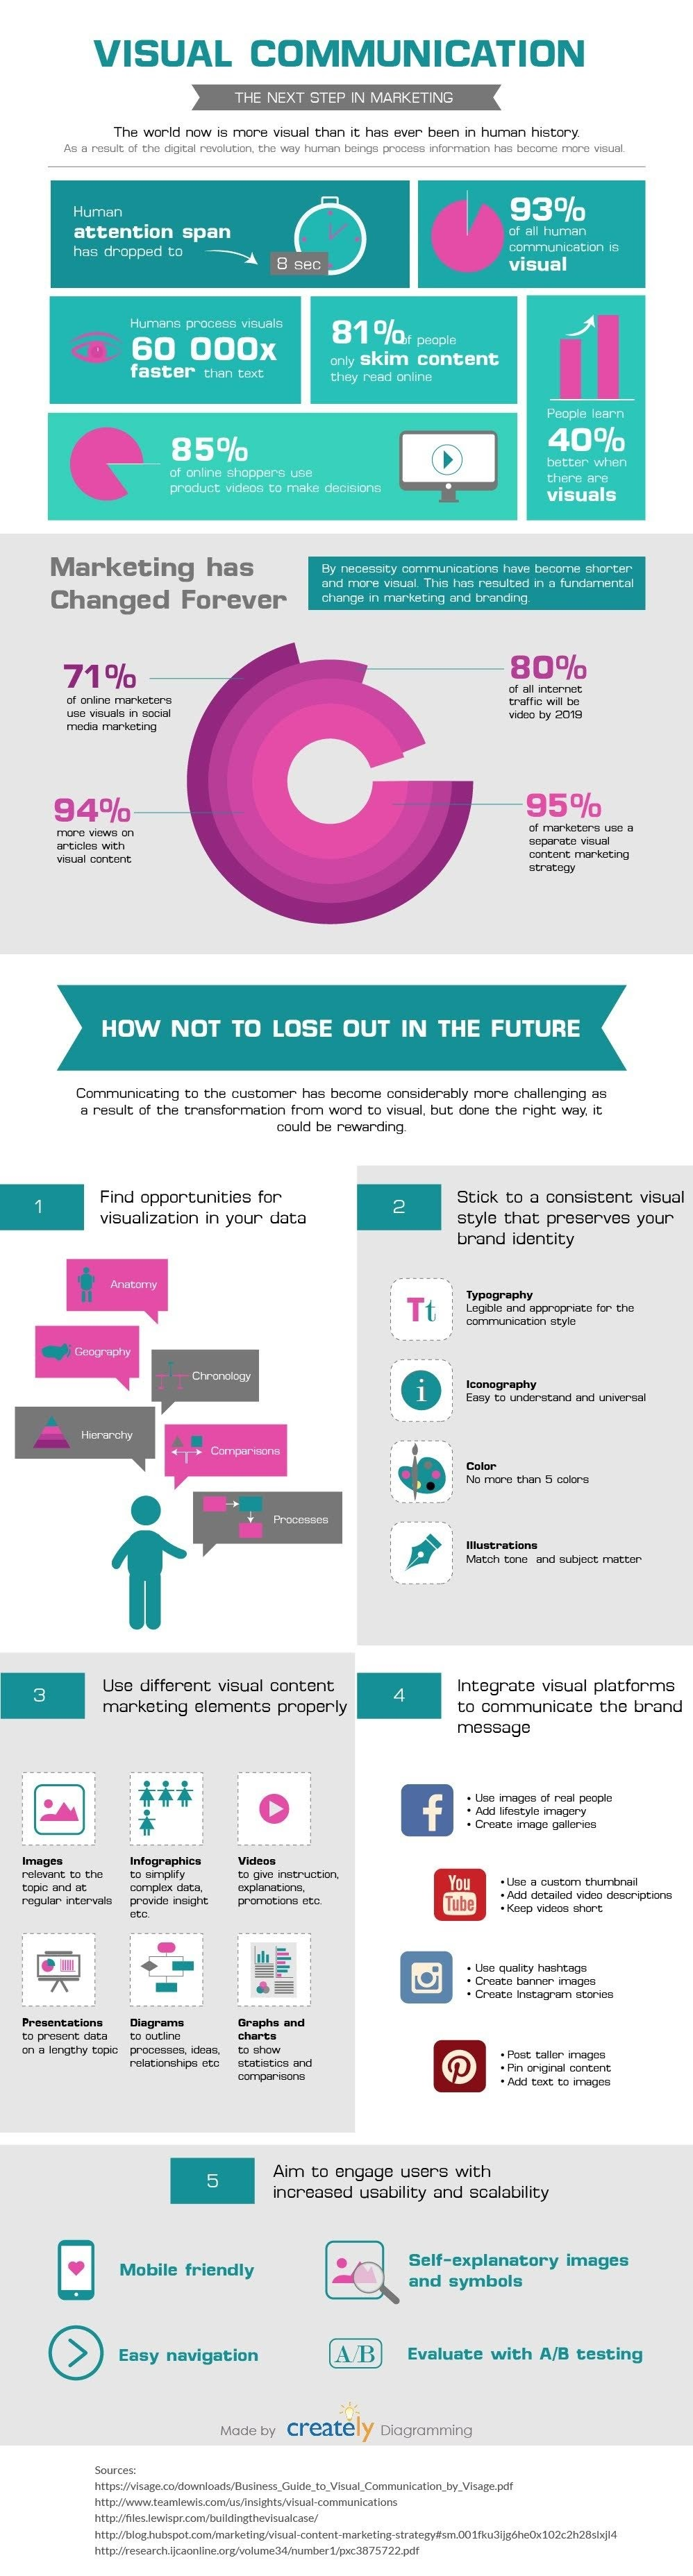 VISUAL COMMUNICATION IN MARKETING: Why did you need it? #INFOGRAPHIC